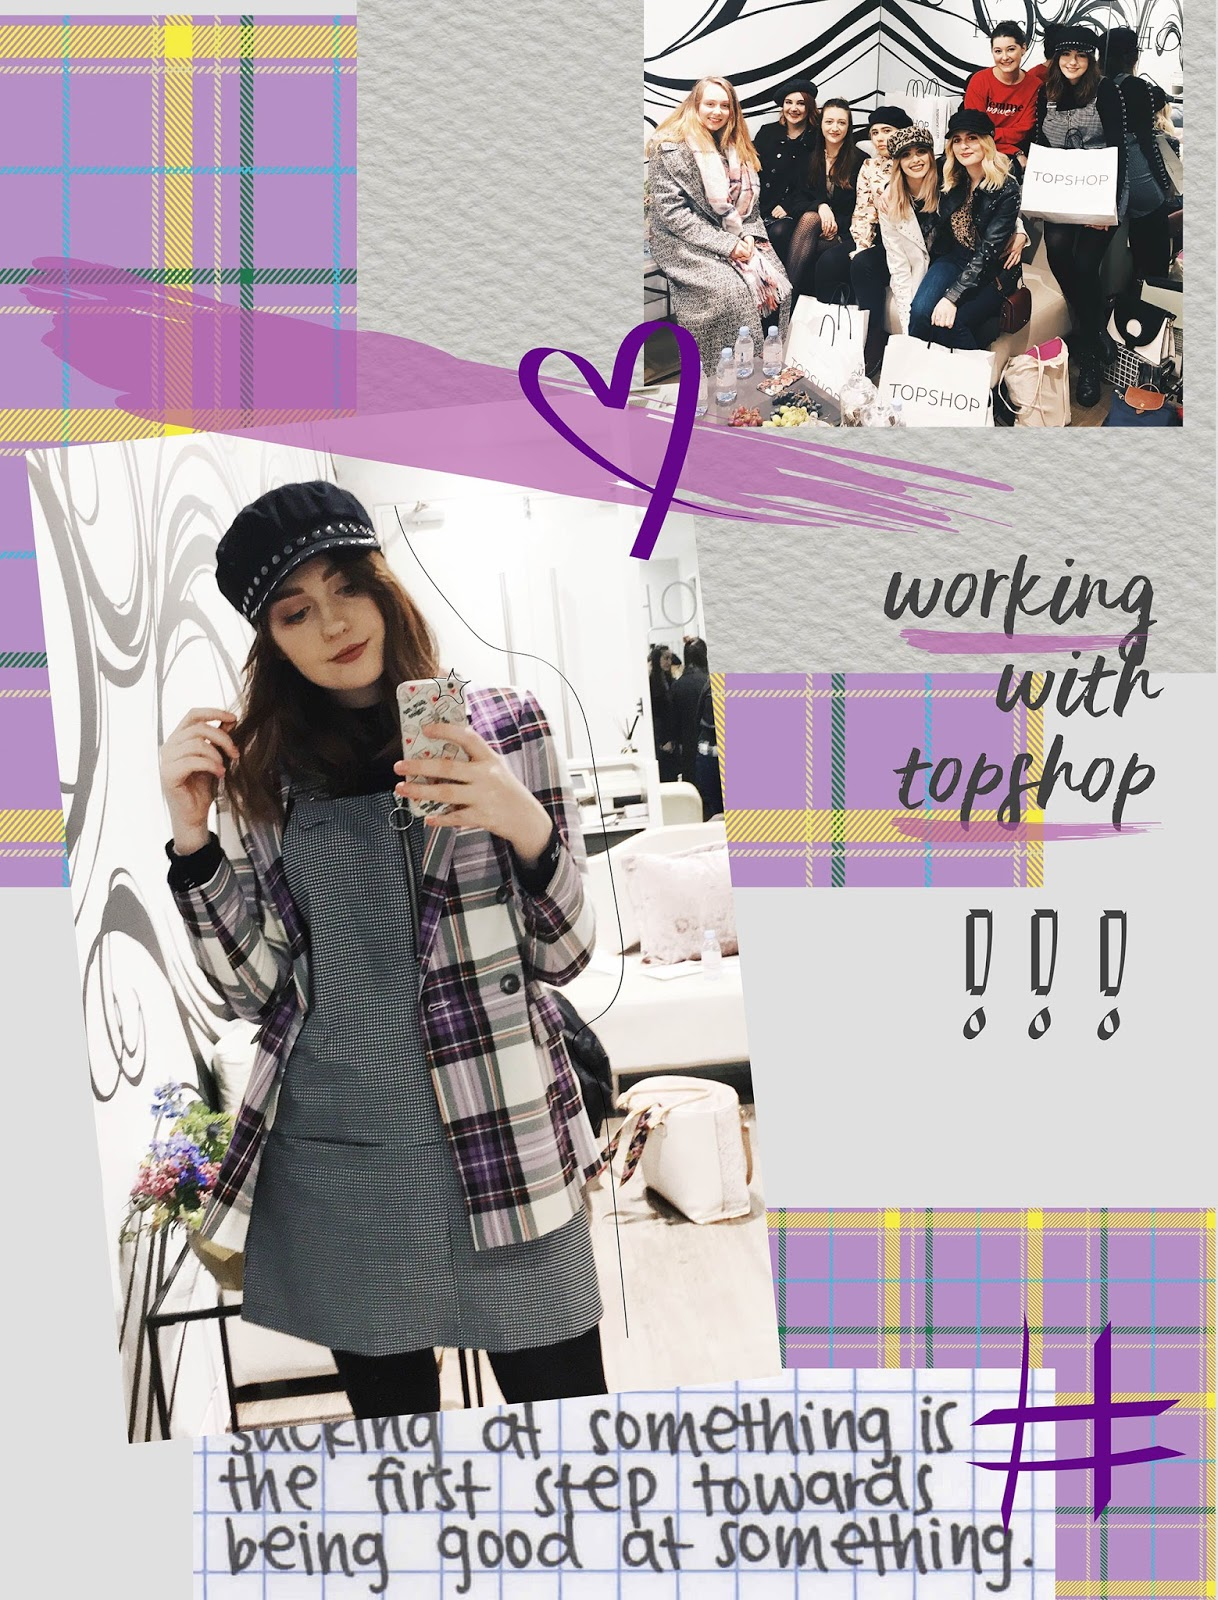 topshop personal shopping liverpool purple collage